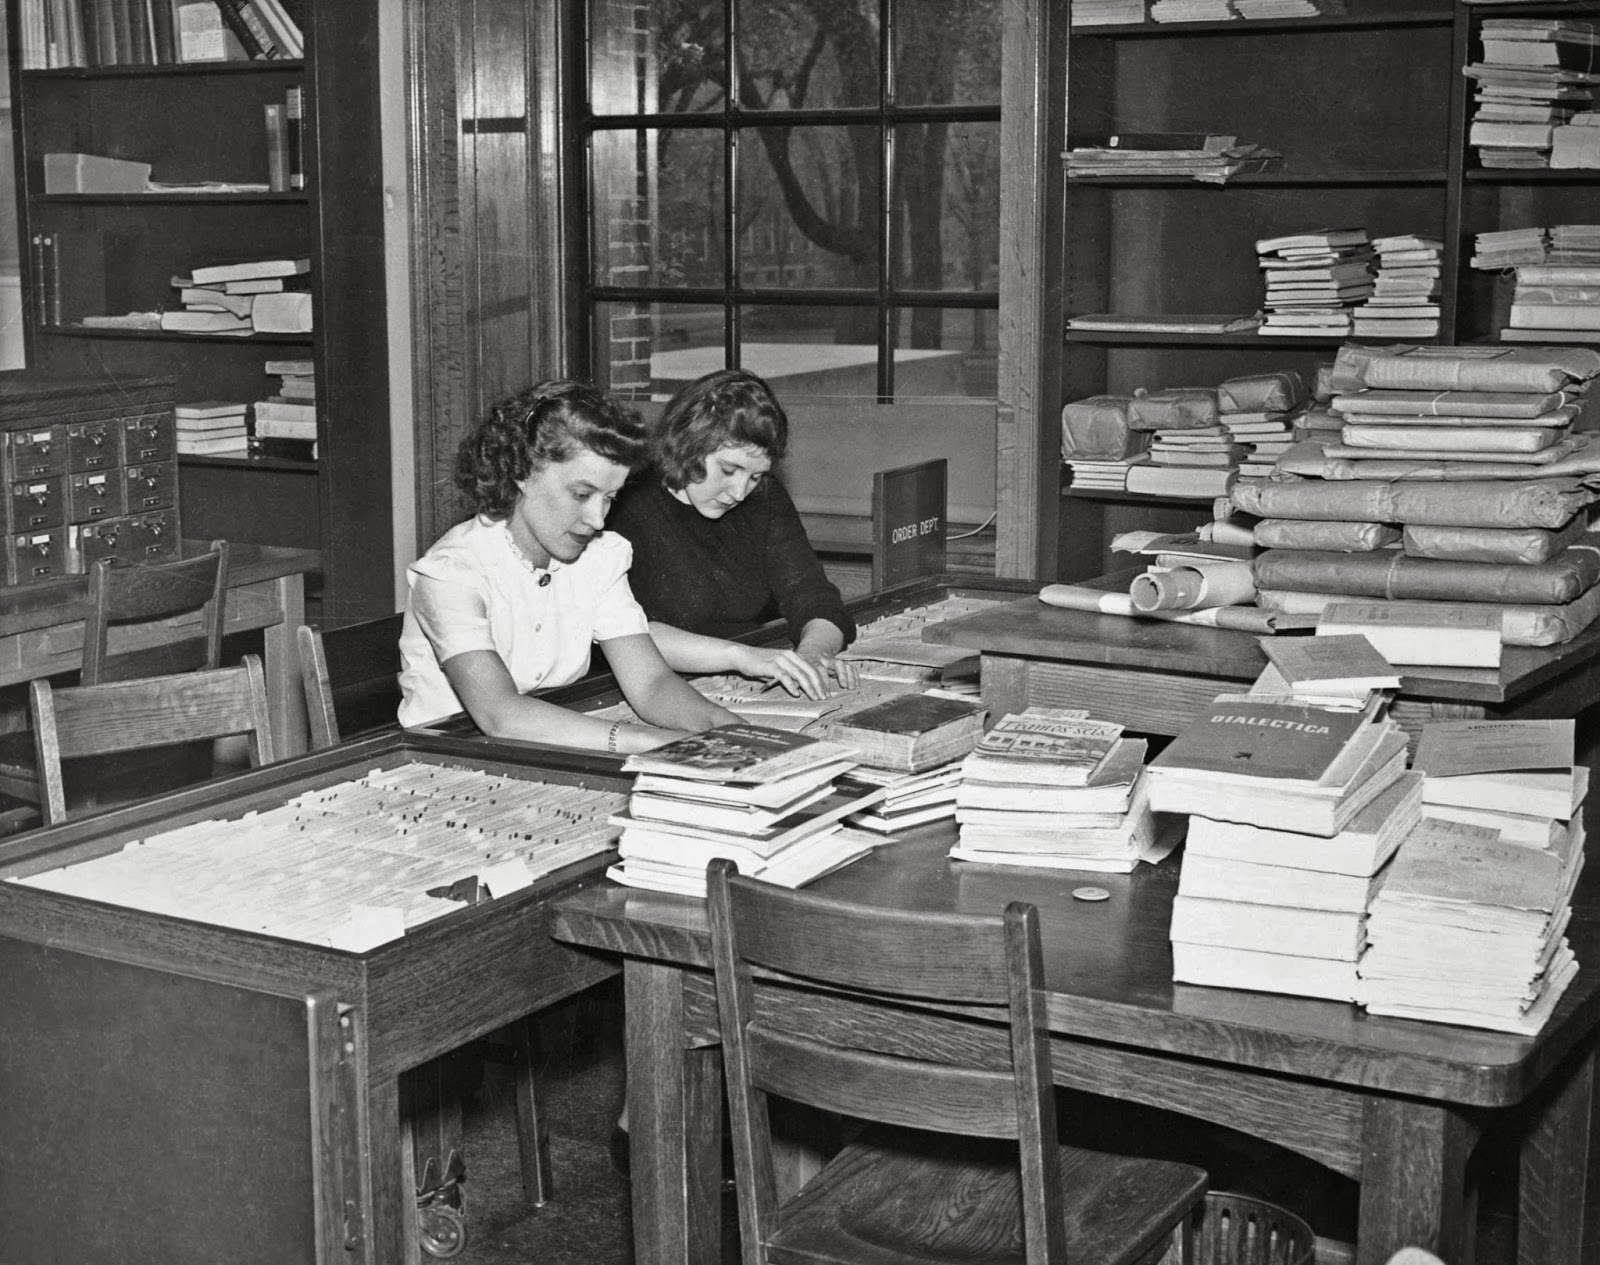 Catalogers in the Widener Library, Harvard University